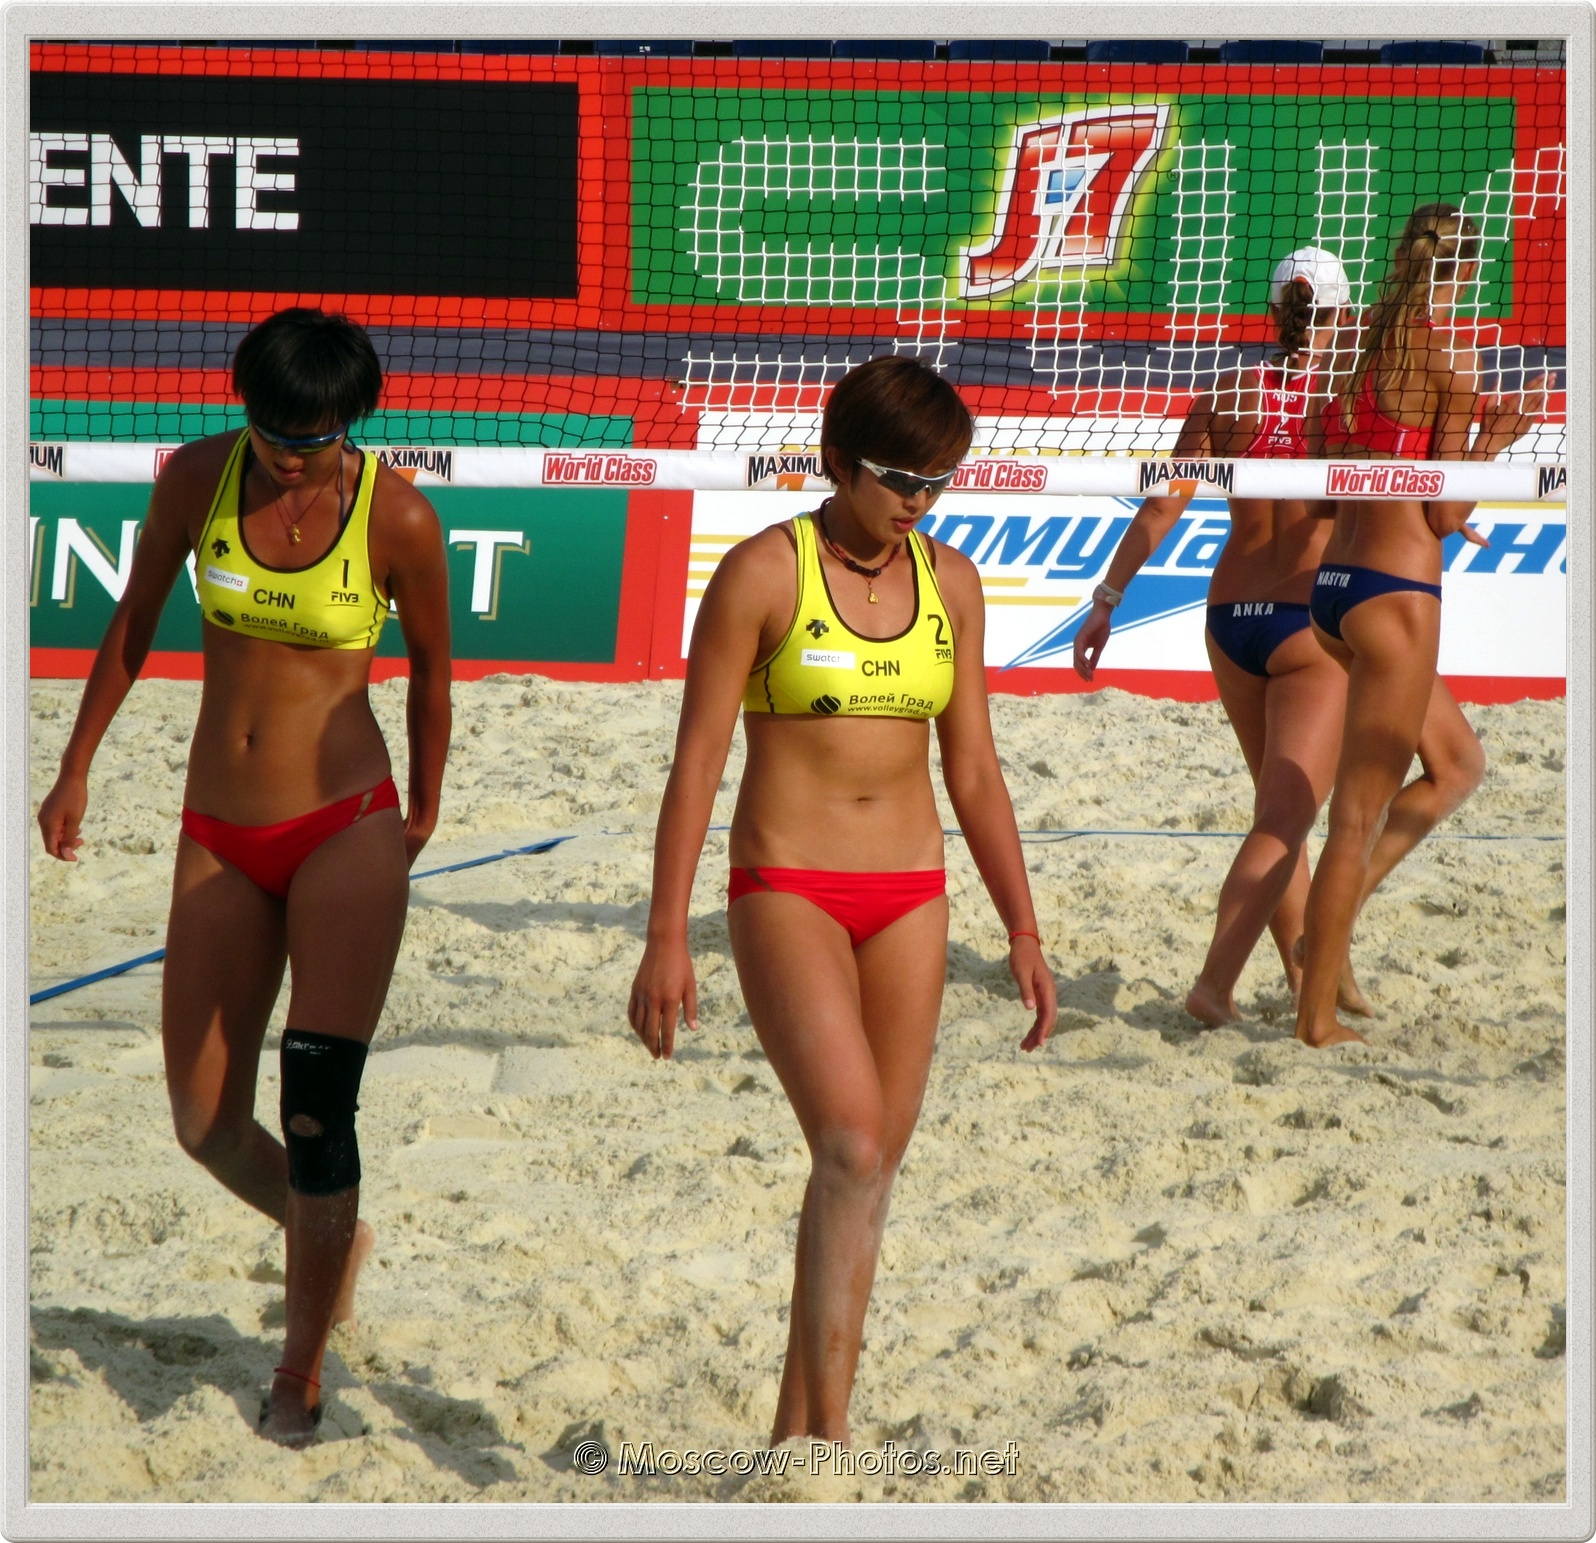 Beach Volleyball Players Ying Huang & Yuan Yue (CHN)